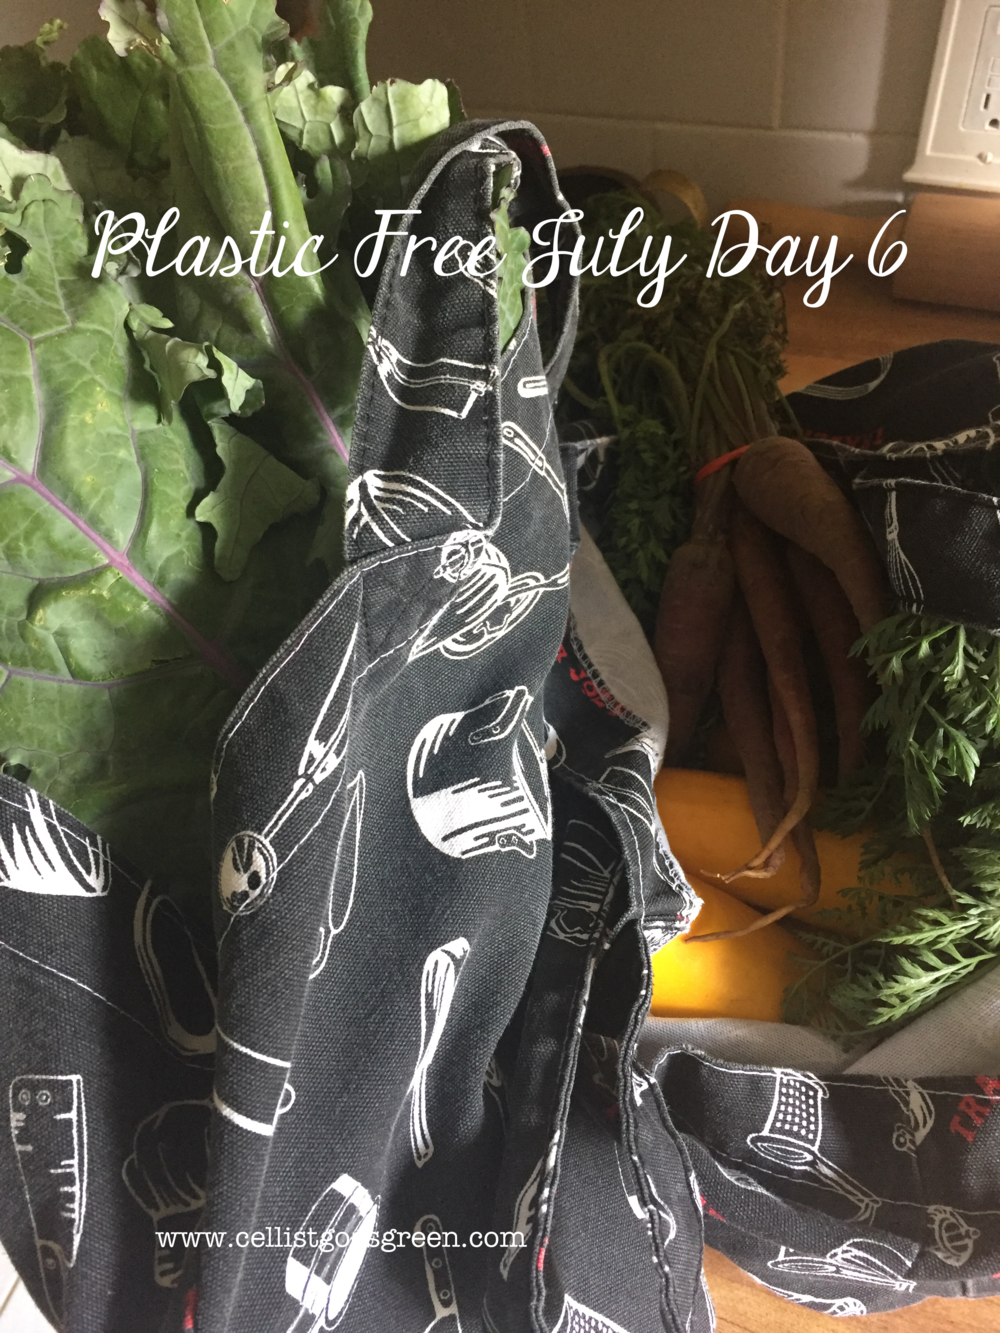 Plastic Free July Day 6: Utilizing the farmers market | Cellist Goes Green